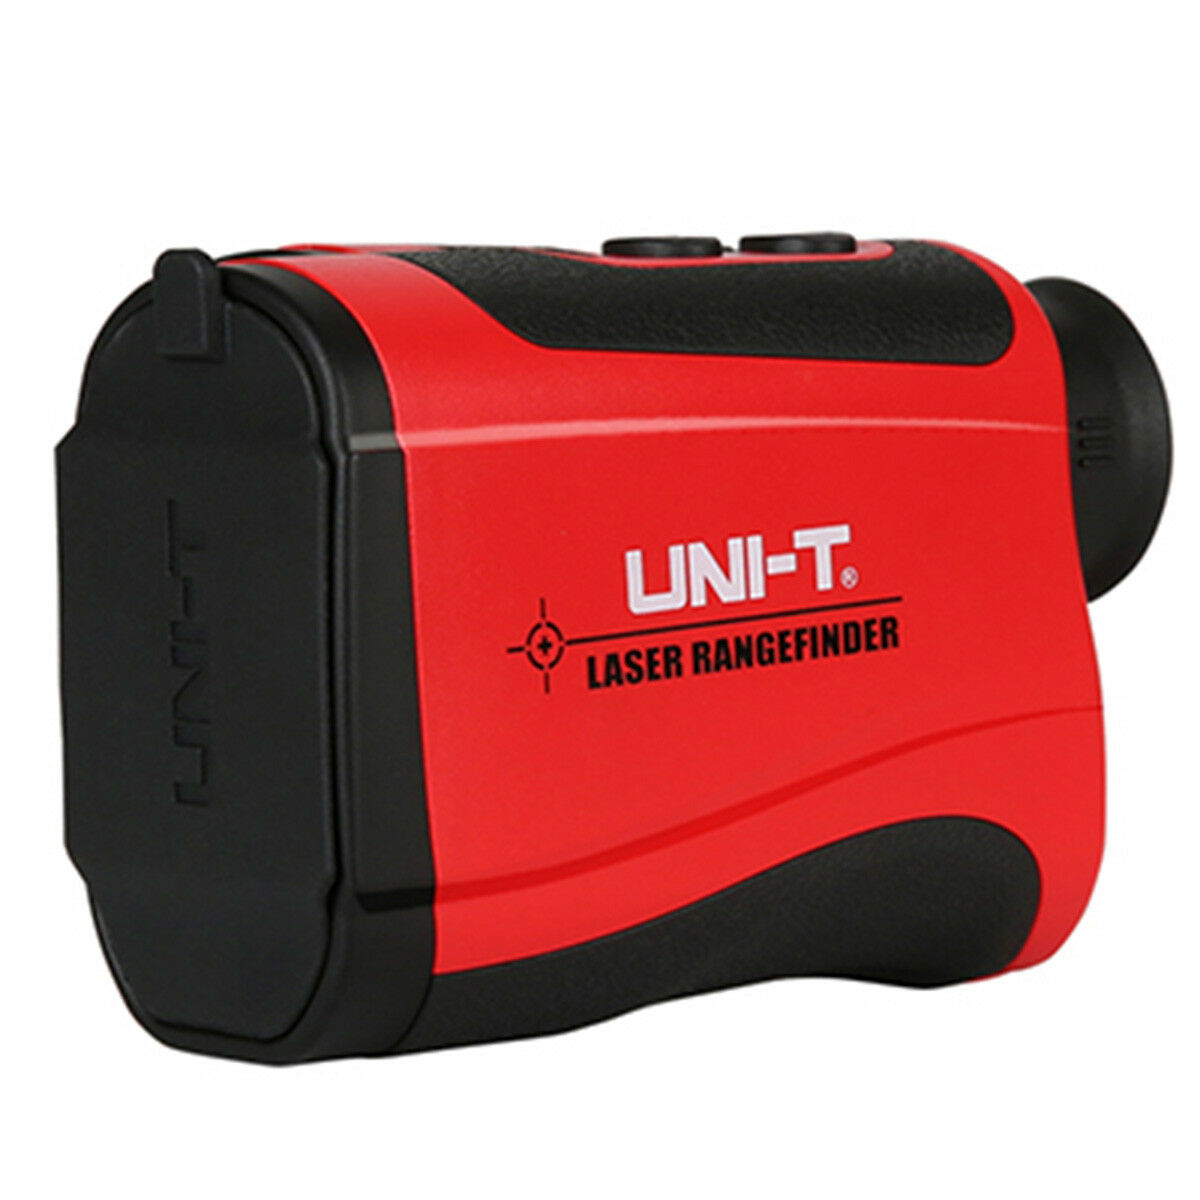 UNI-T LM600-1200M Laser Rangefinder Portable Long Distance Measurement Telescope